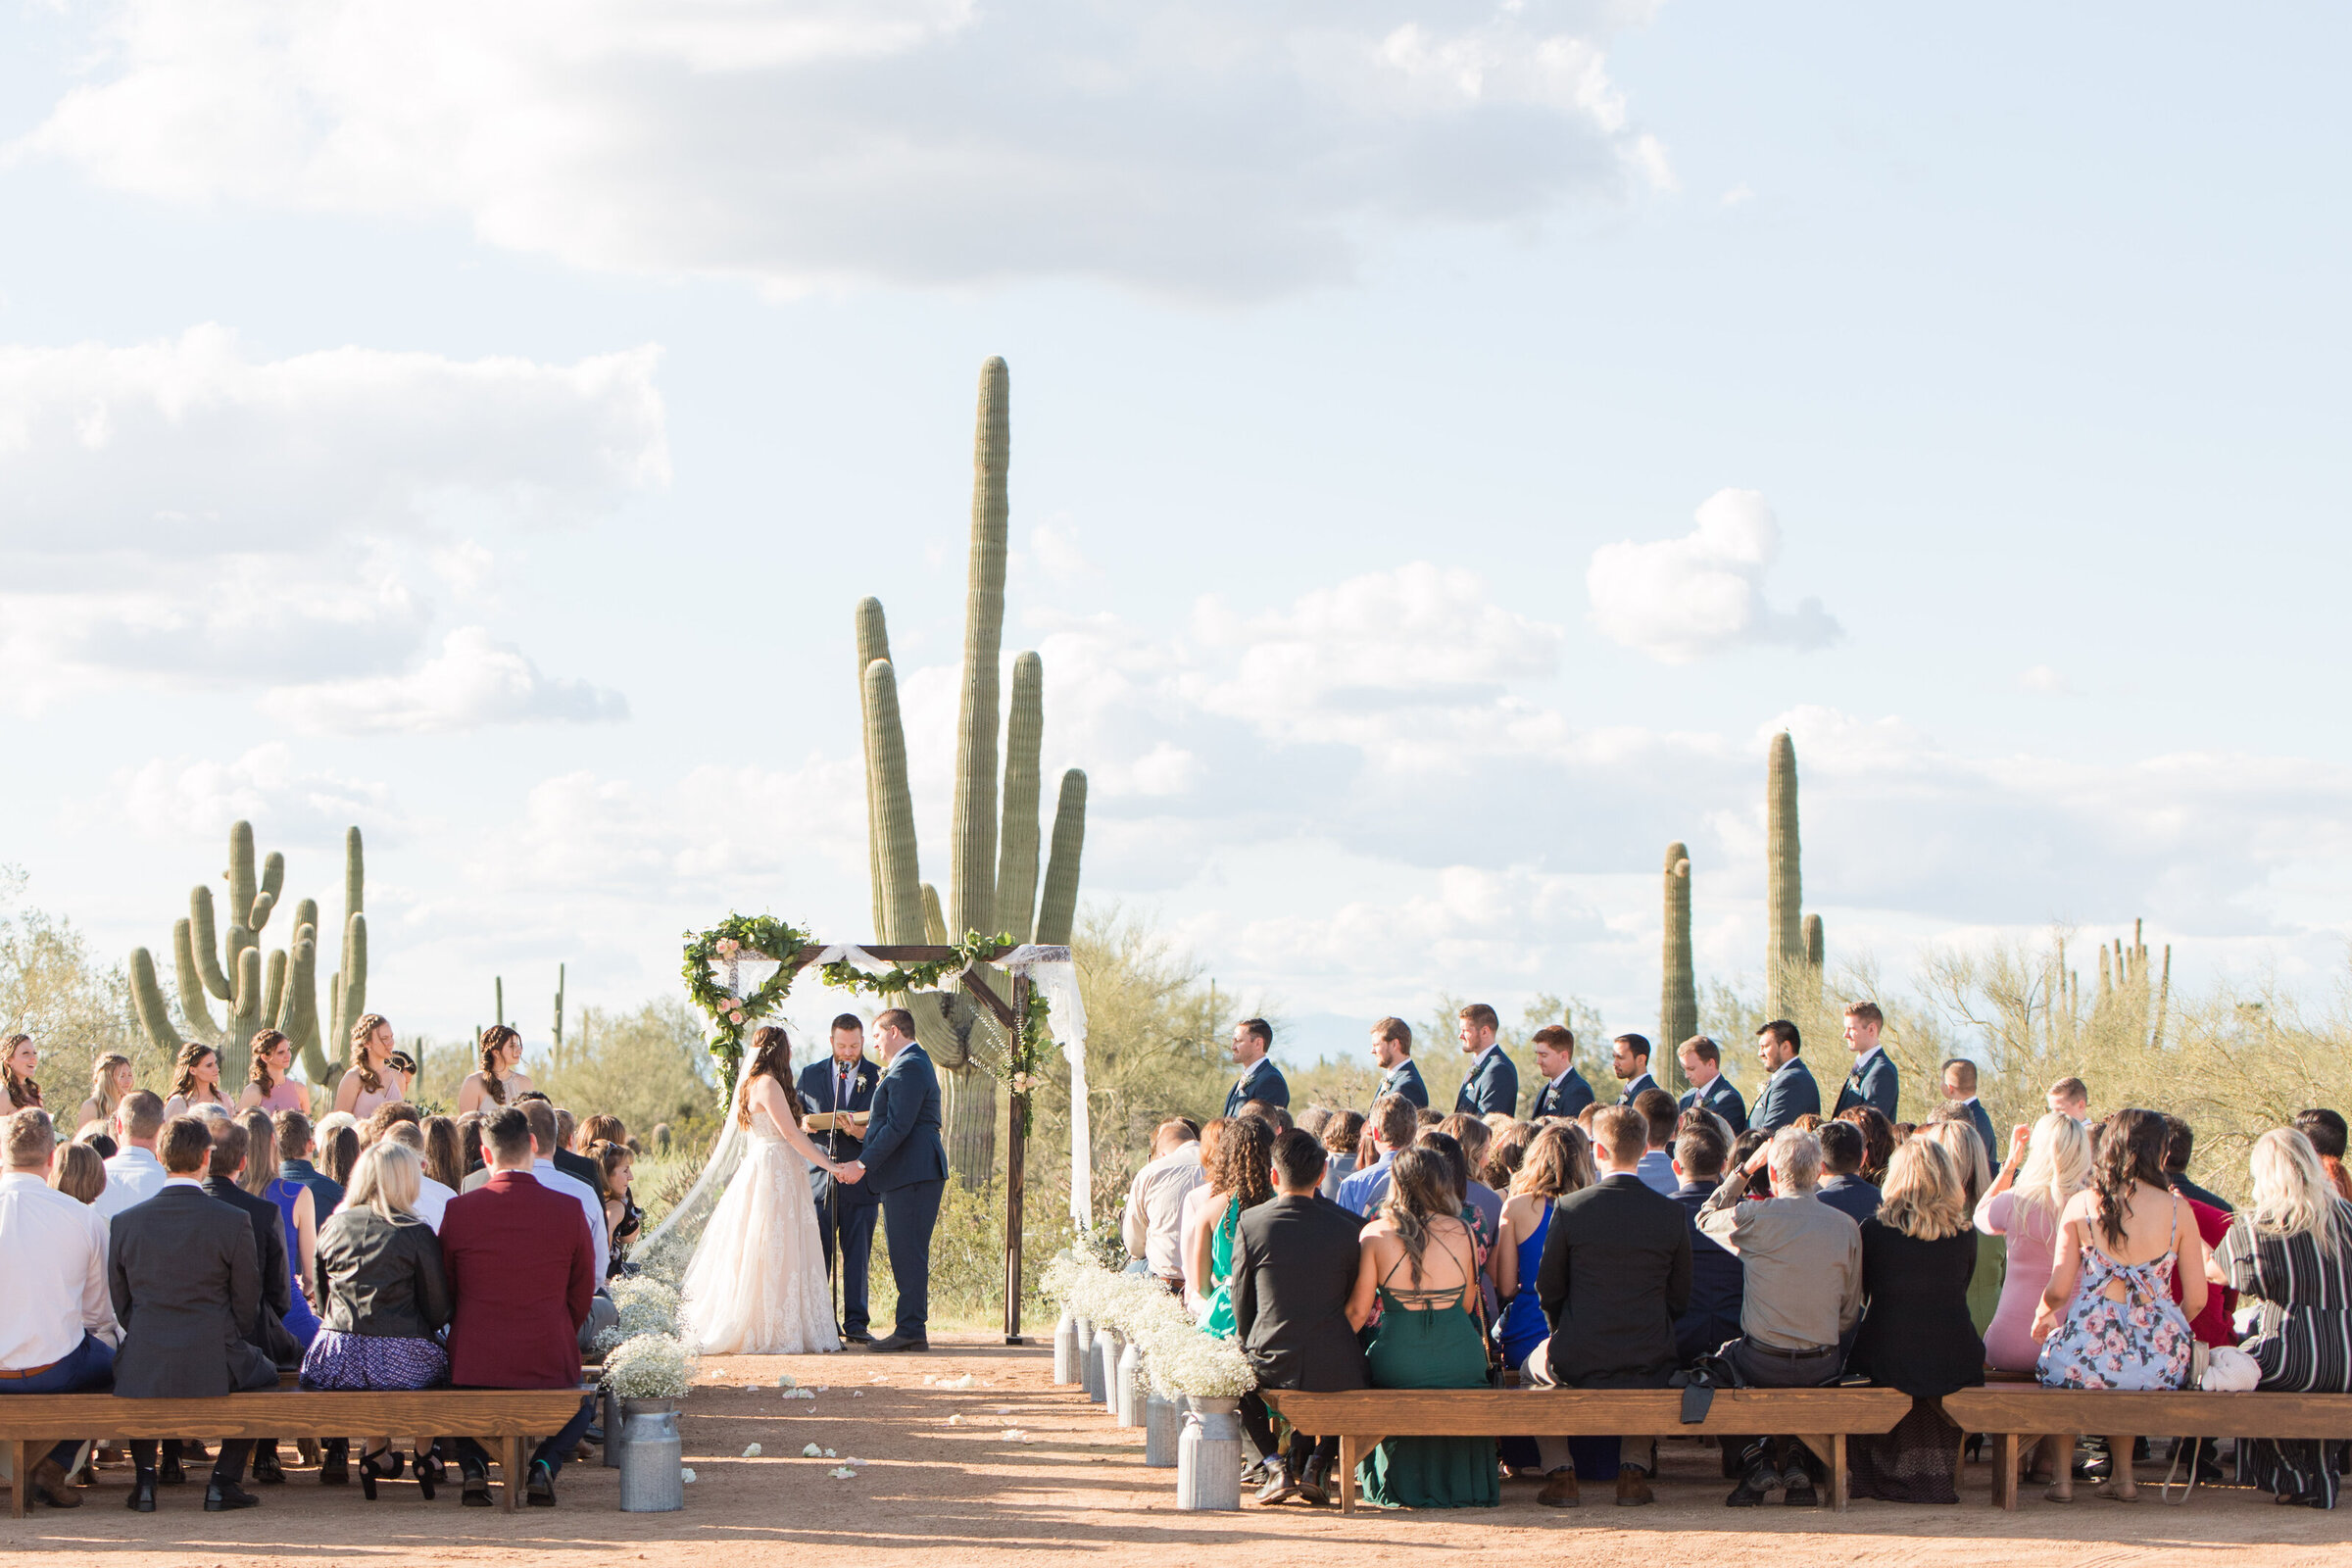 A photo of one of the best wedding locations in Arizona